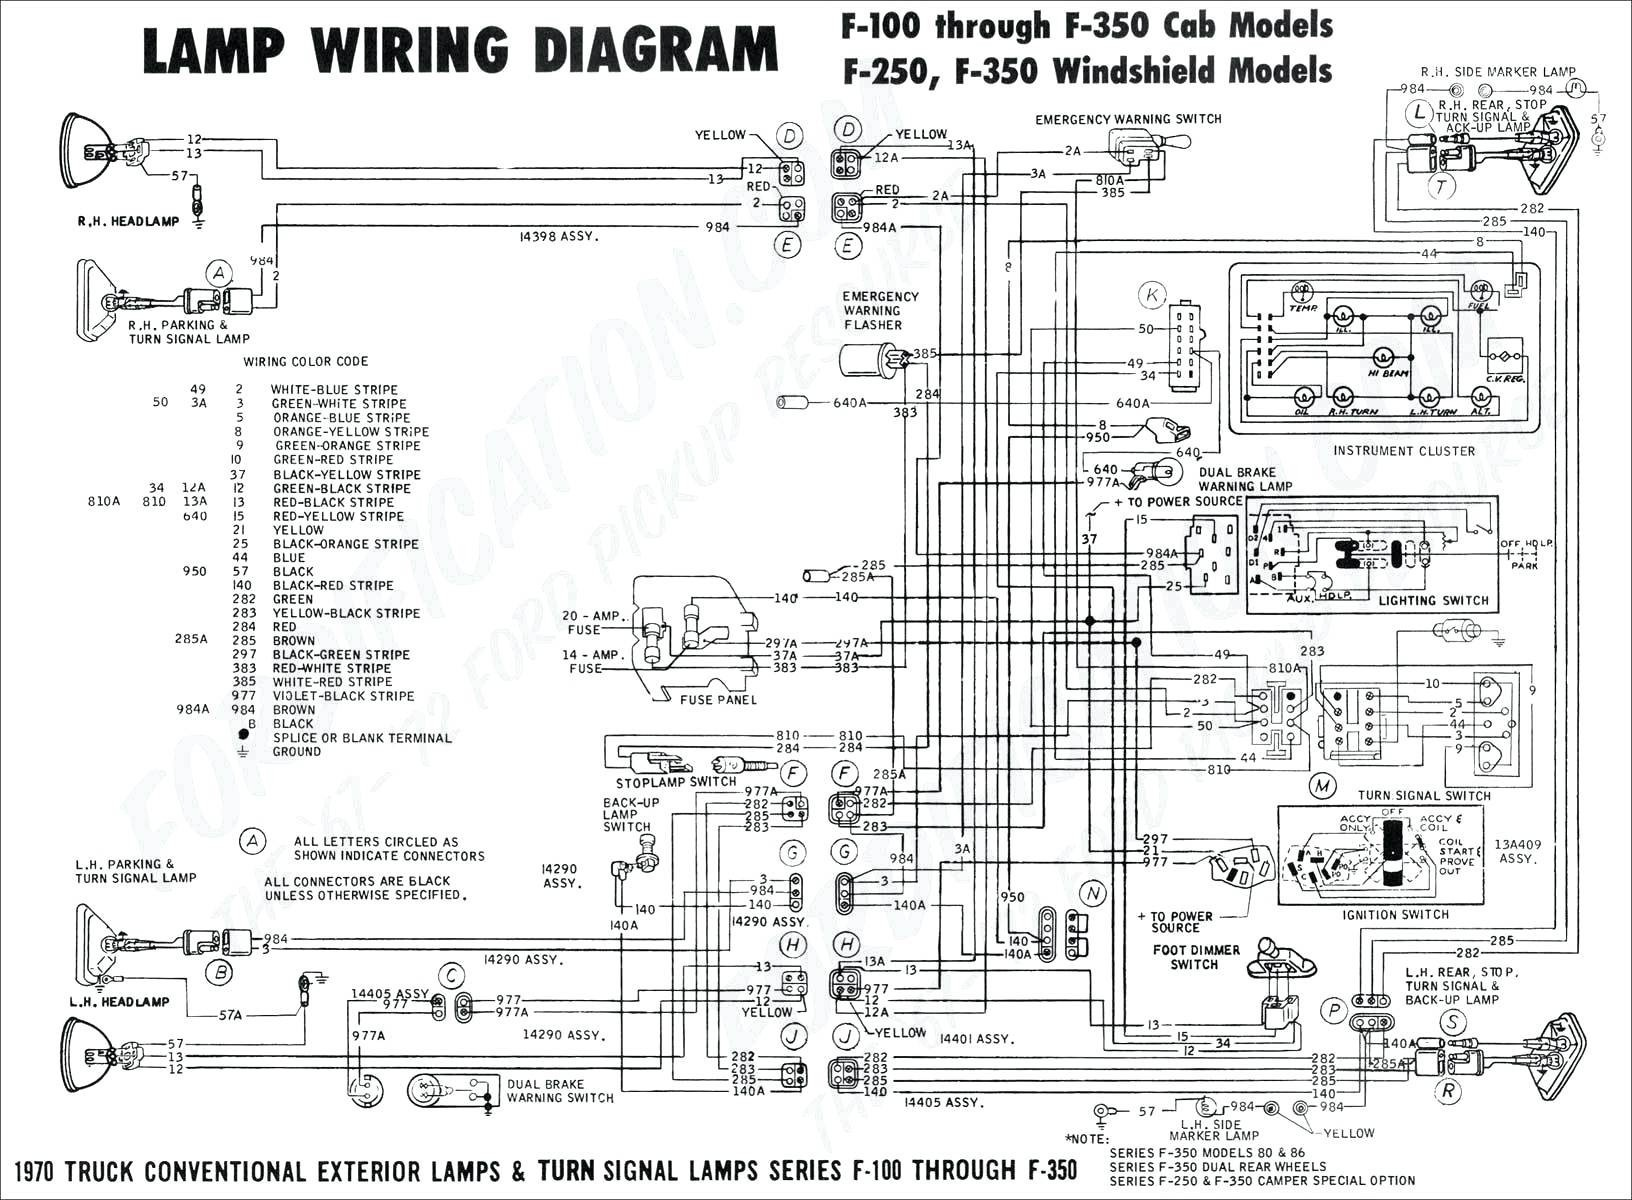 wiring diagram engine electrical. Black Bedroom Furniture Sets. Home Design Ideas